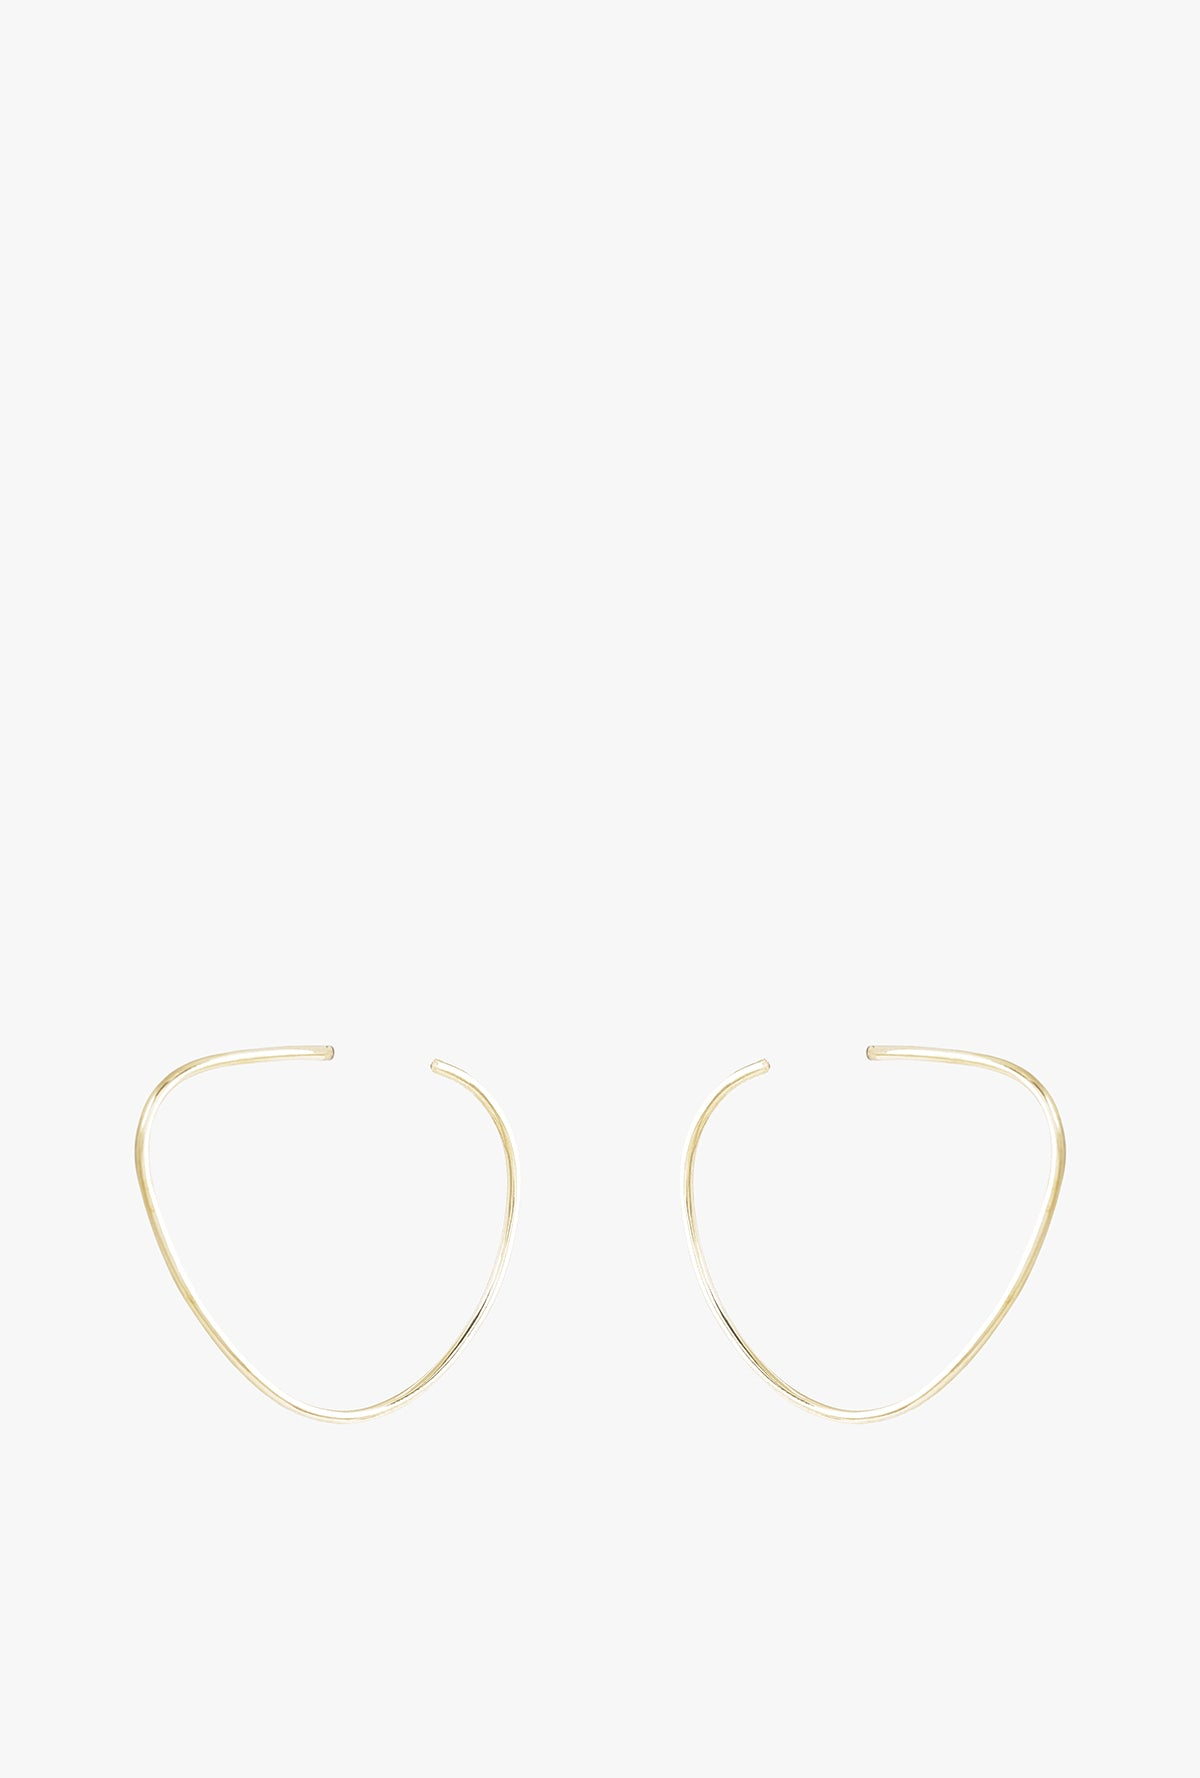 Maxi Sabi Organic Hoop Earrings